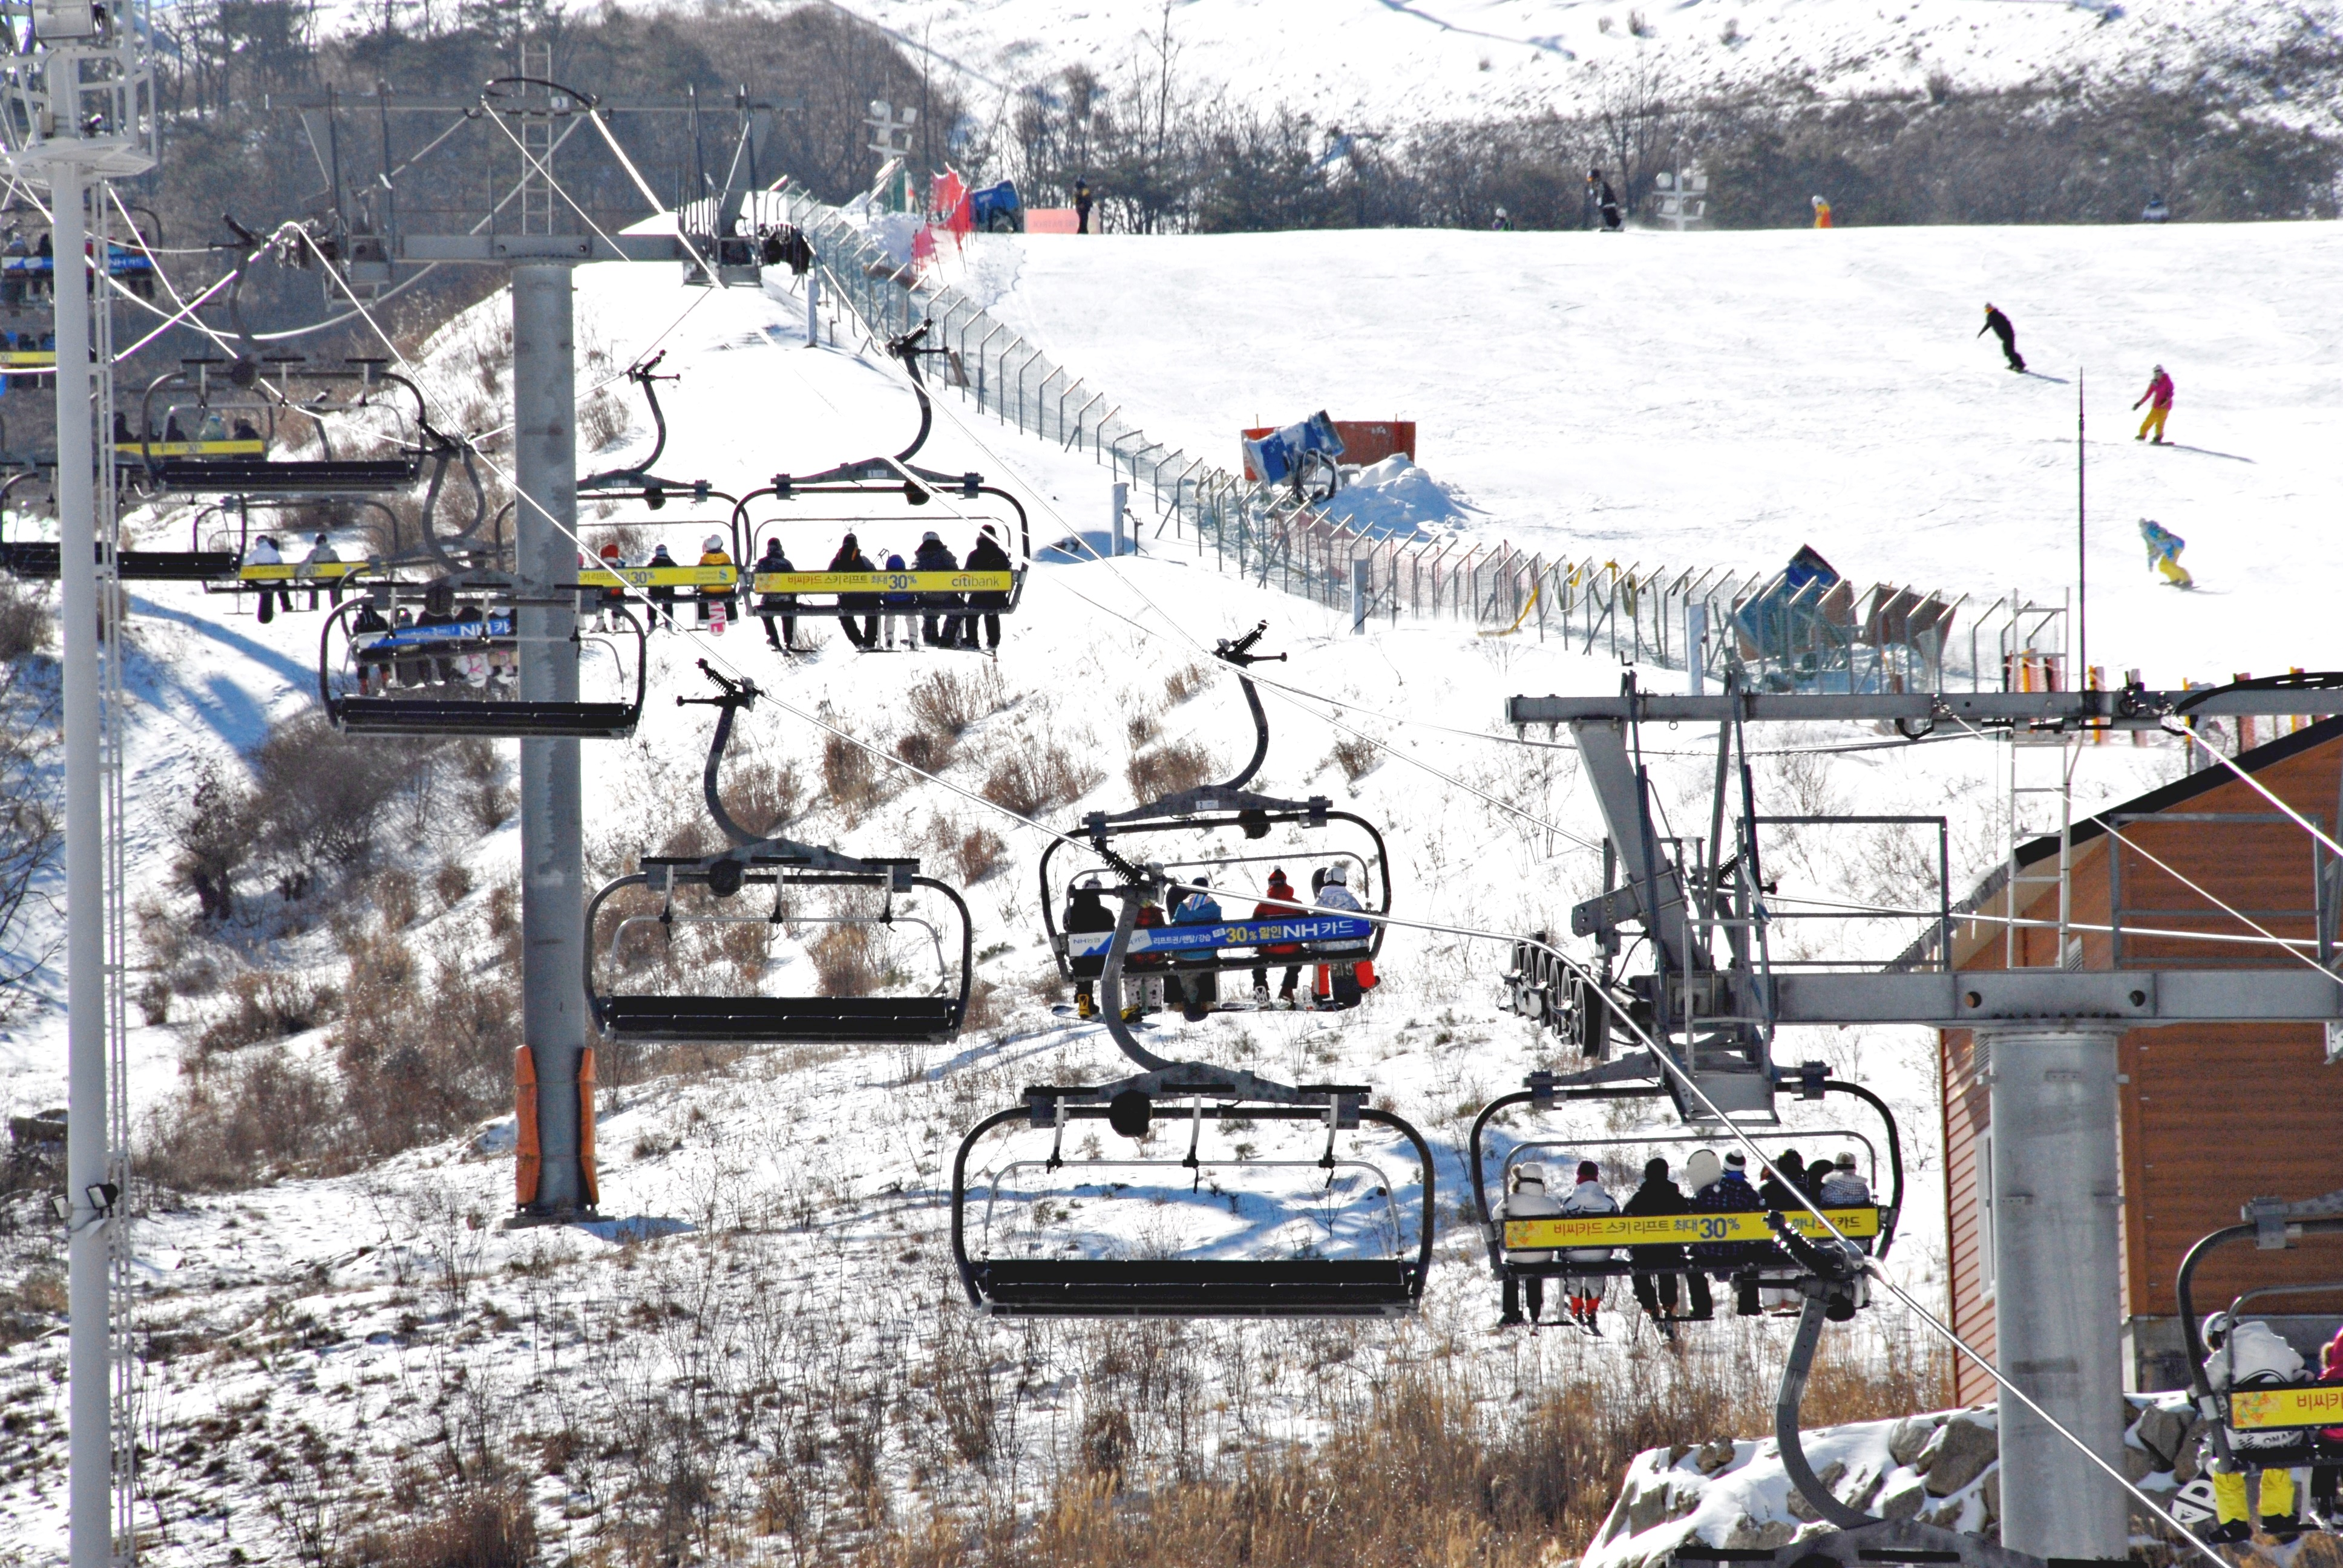 (Winter) Eden Valley Ski Resort One Day Tour - Depart from Daegu